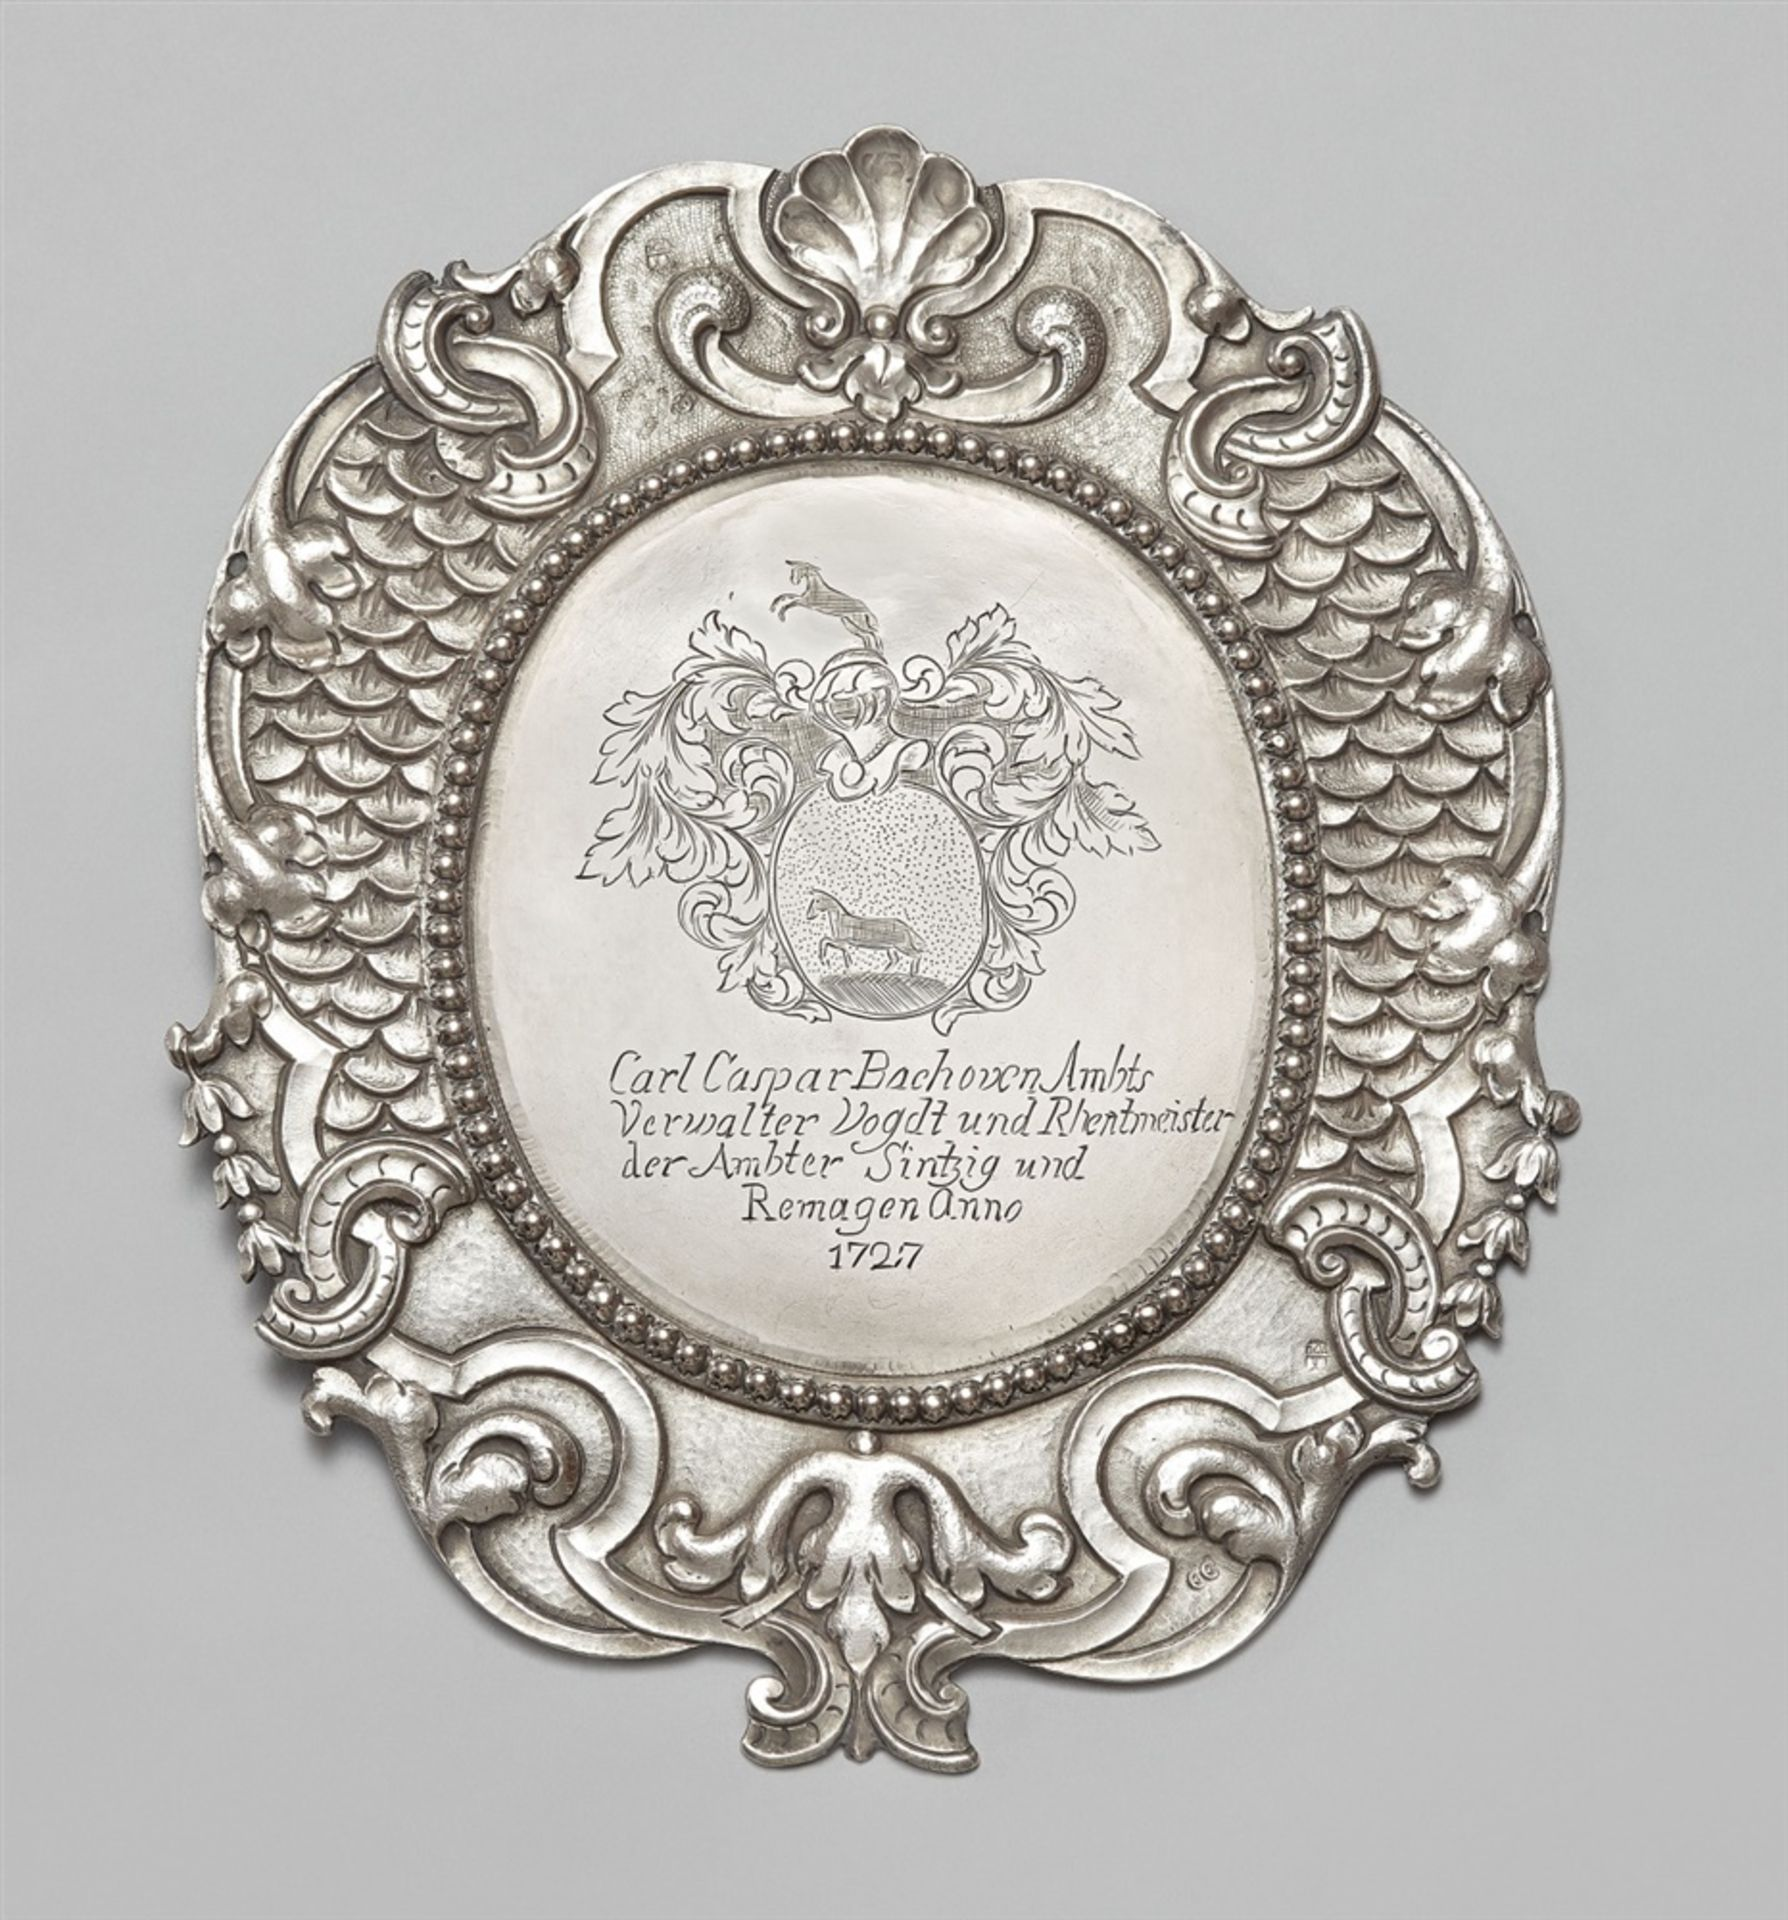 Los 755 - A Sinzig silver official shieldSilver. Oval cartouche form shield with chased règence décor to the